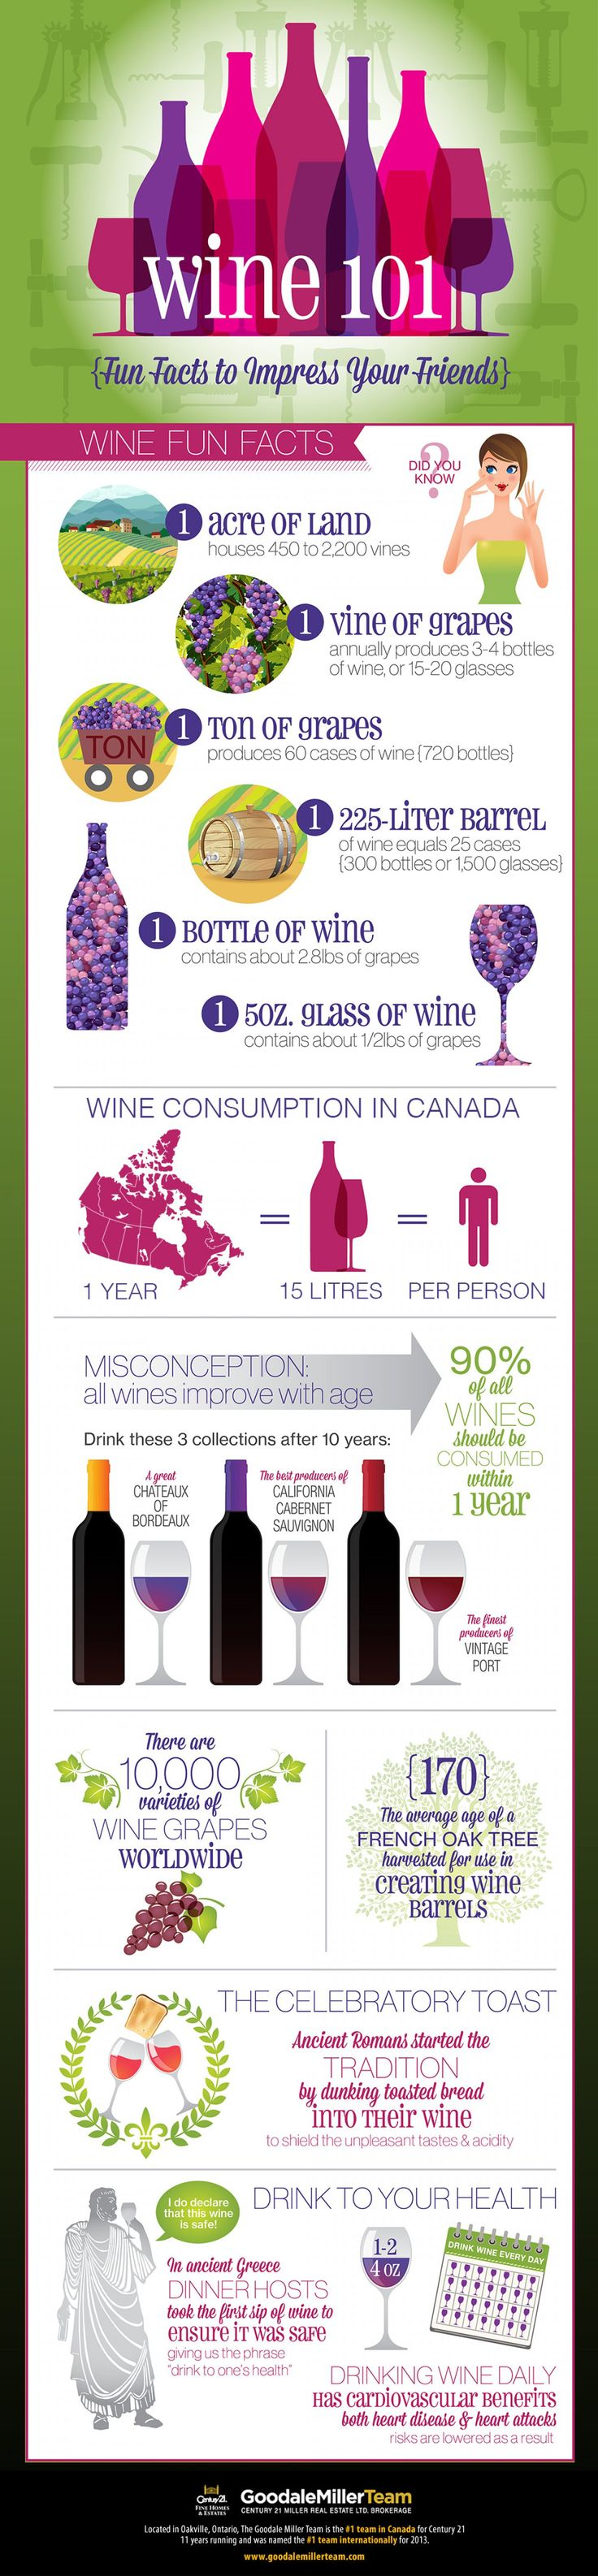 Fun Facts About Wine! #infographic